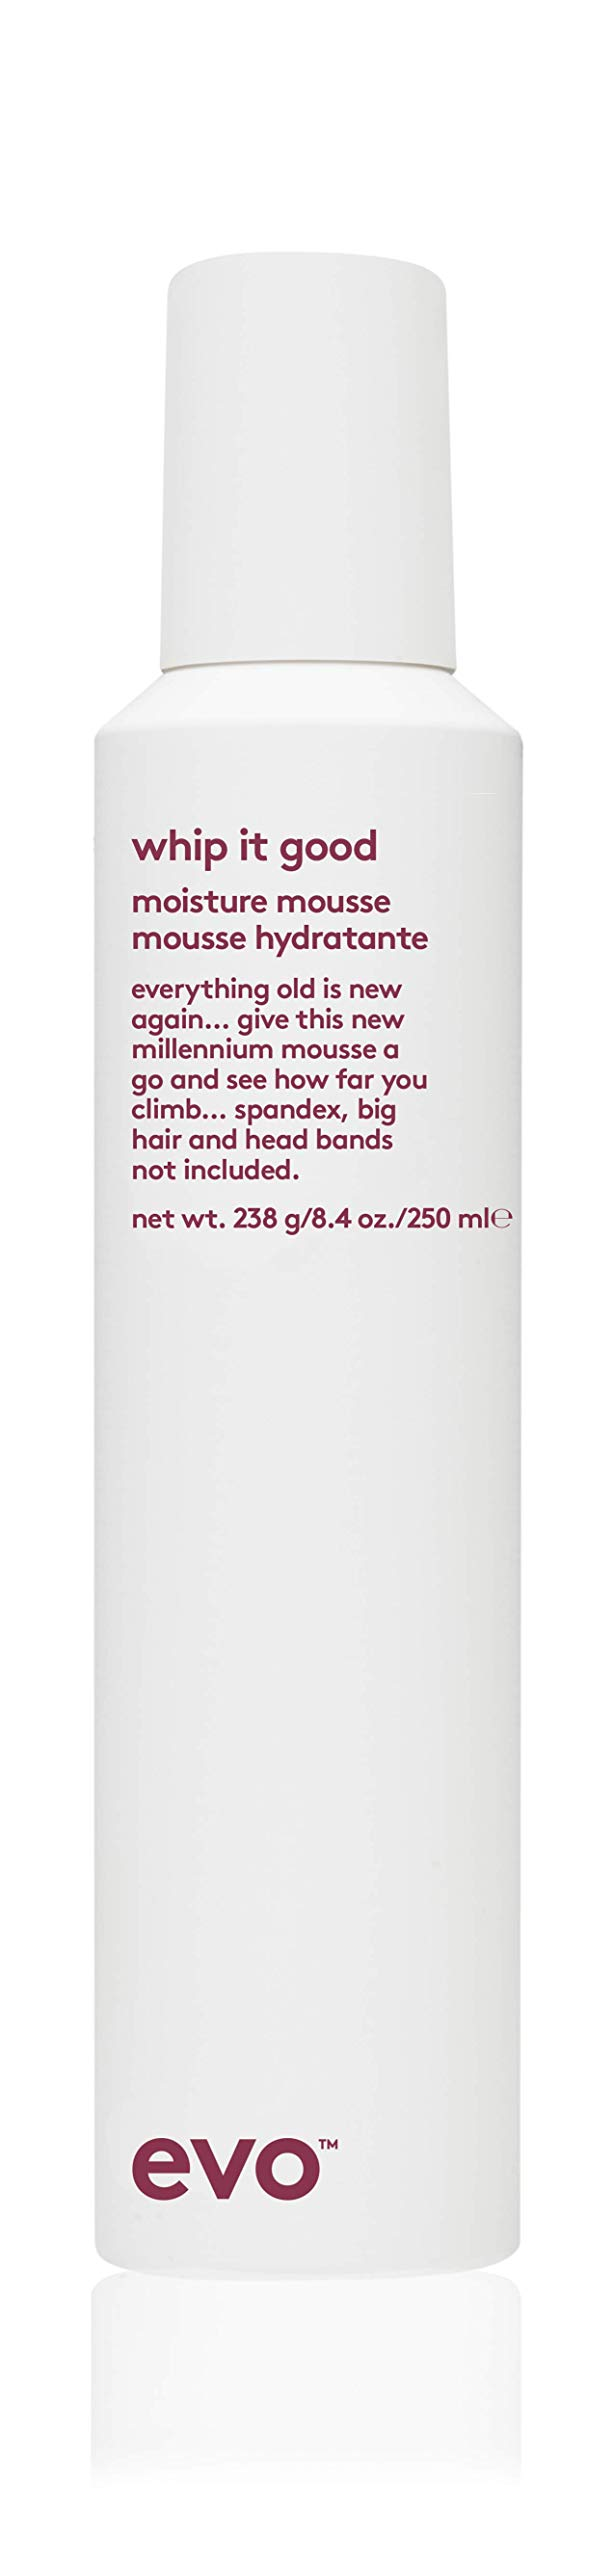 Evo Whip It Good Styling Mousse, 8.4 oz, 250 mL